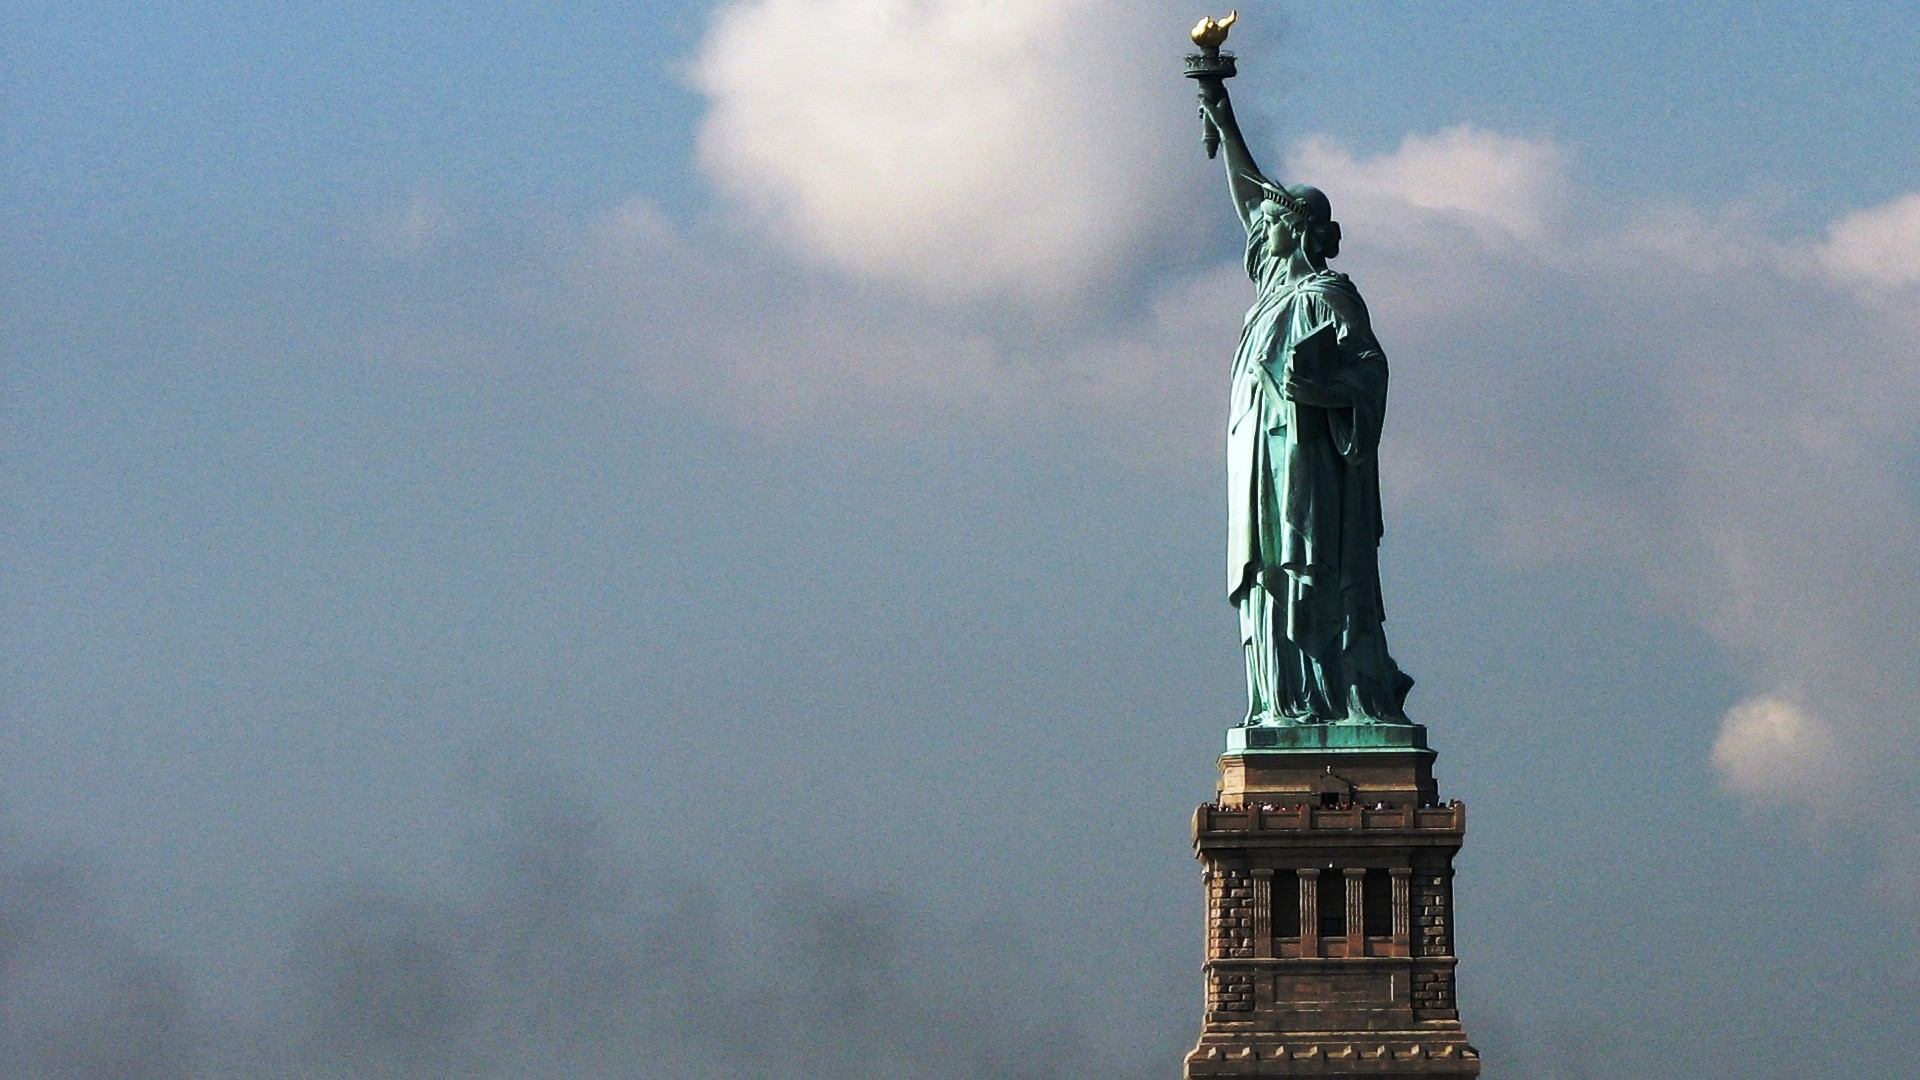 Download Statue Of Liberty 38295 1920x1080 Px High Definition